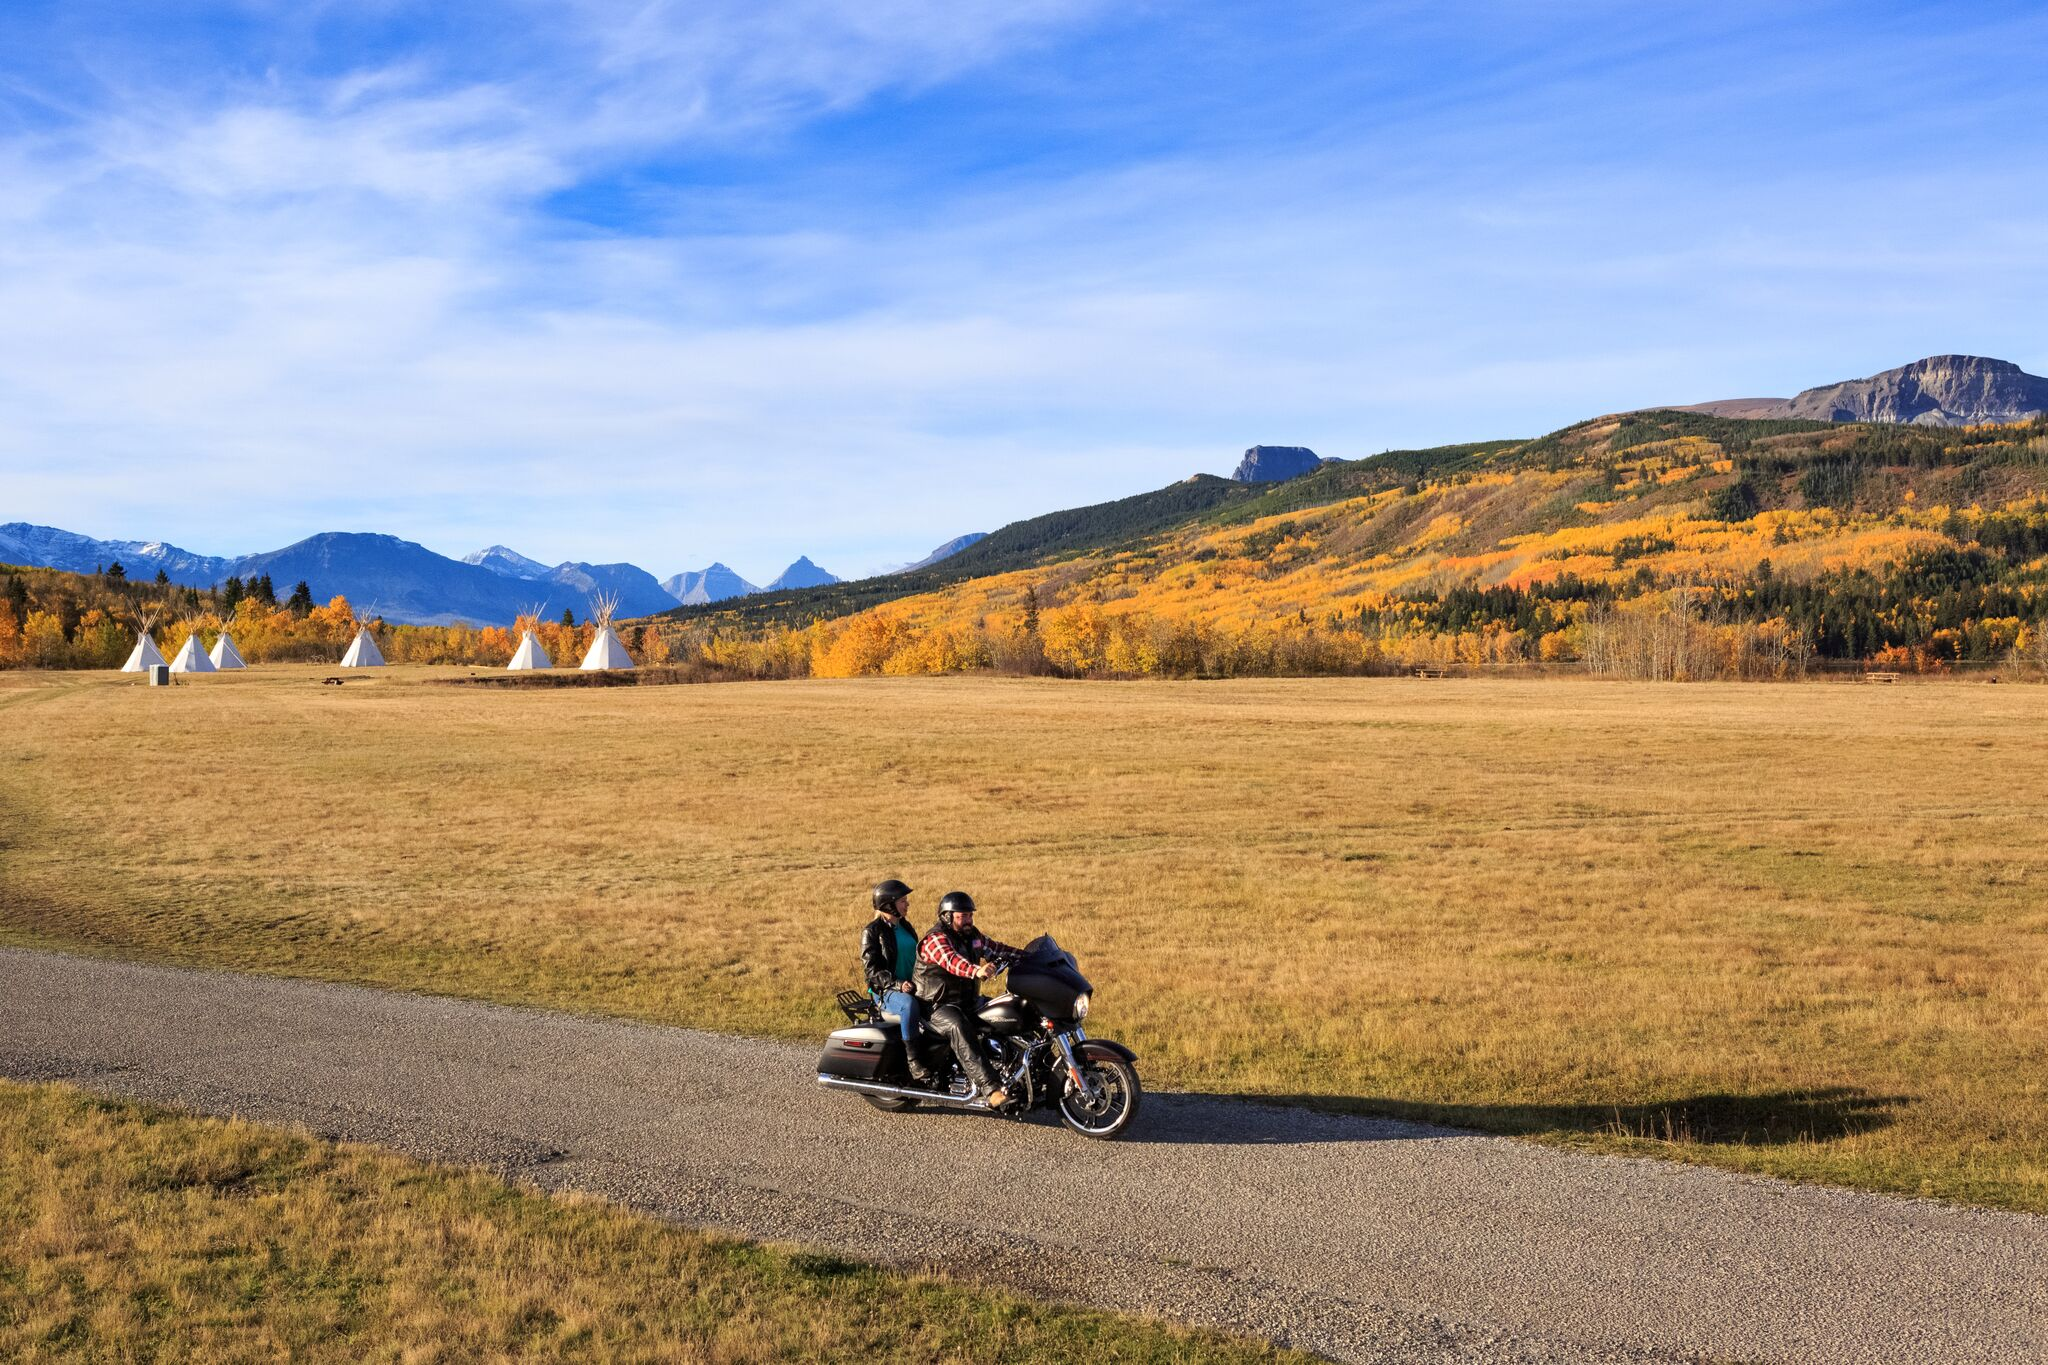 Visitors take a motorcycle ride in the fall near St. Mary, Montana in Glacier National Park.